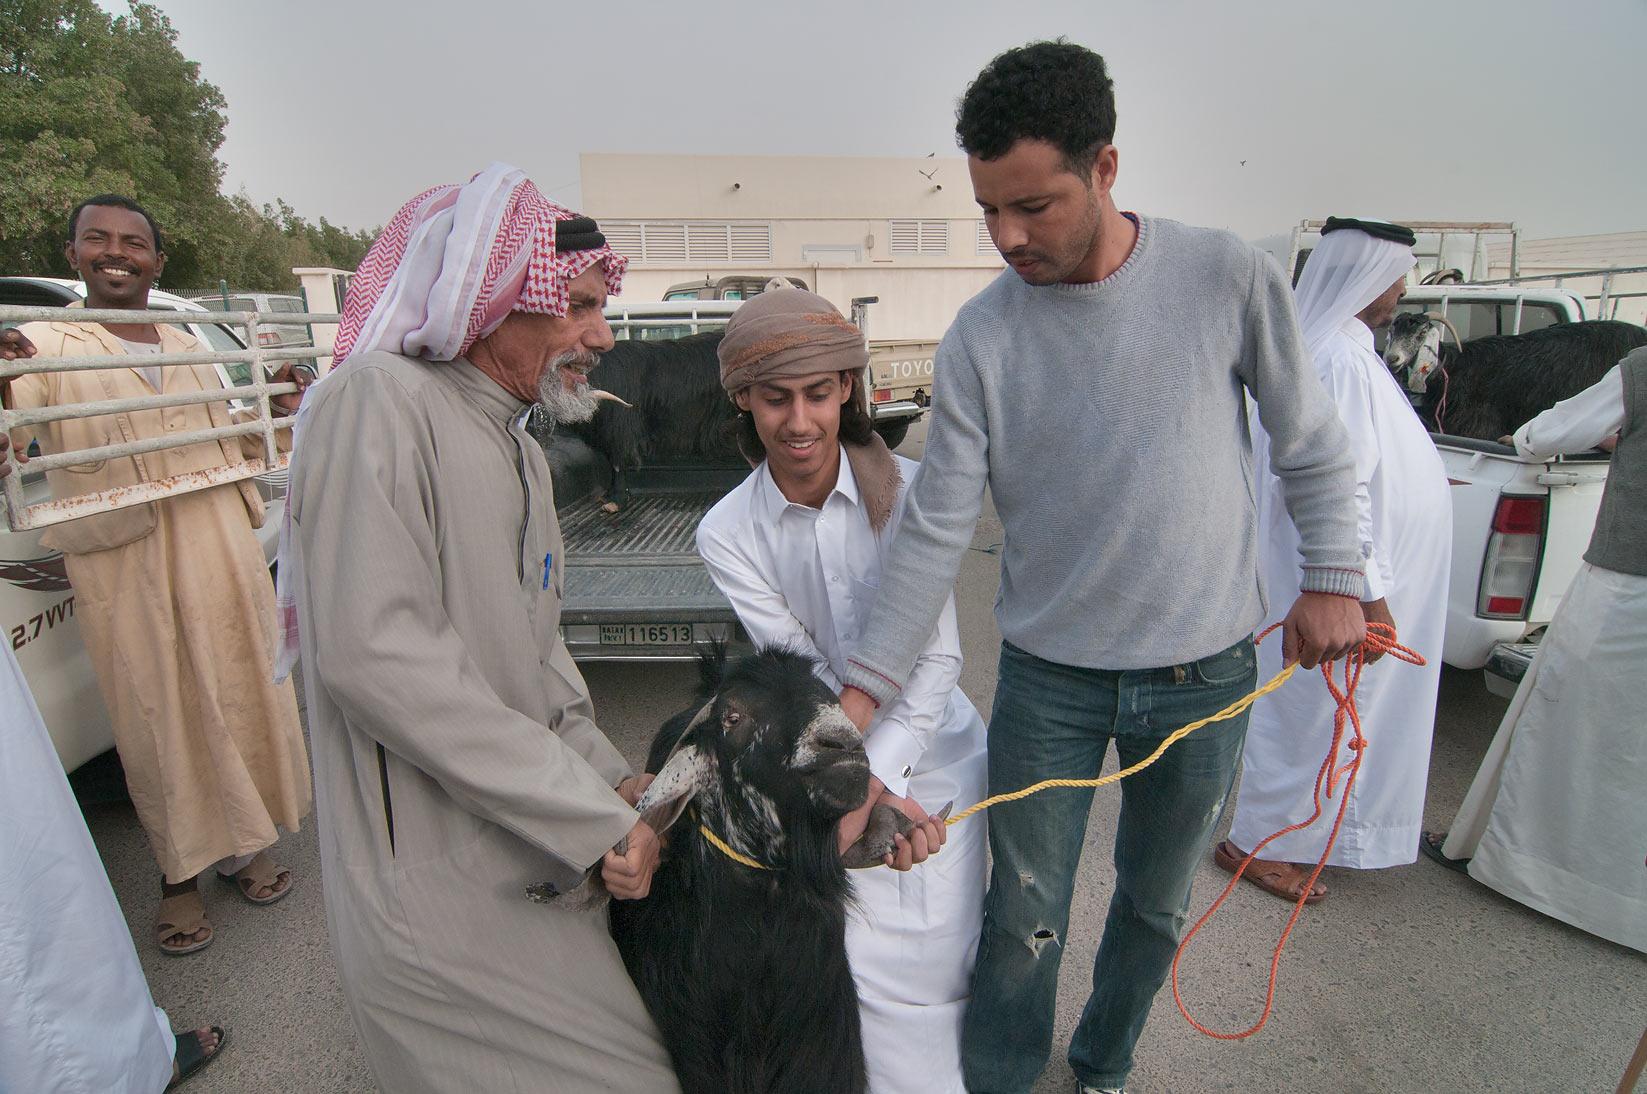 Pulling black goat in Sheep Market, Wholesale Markets area. Doha, Qatar